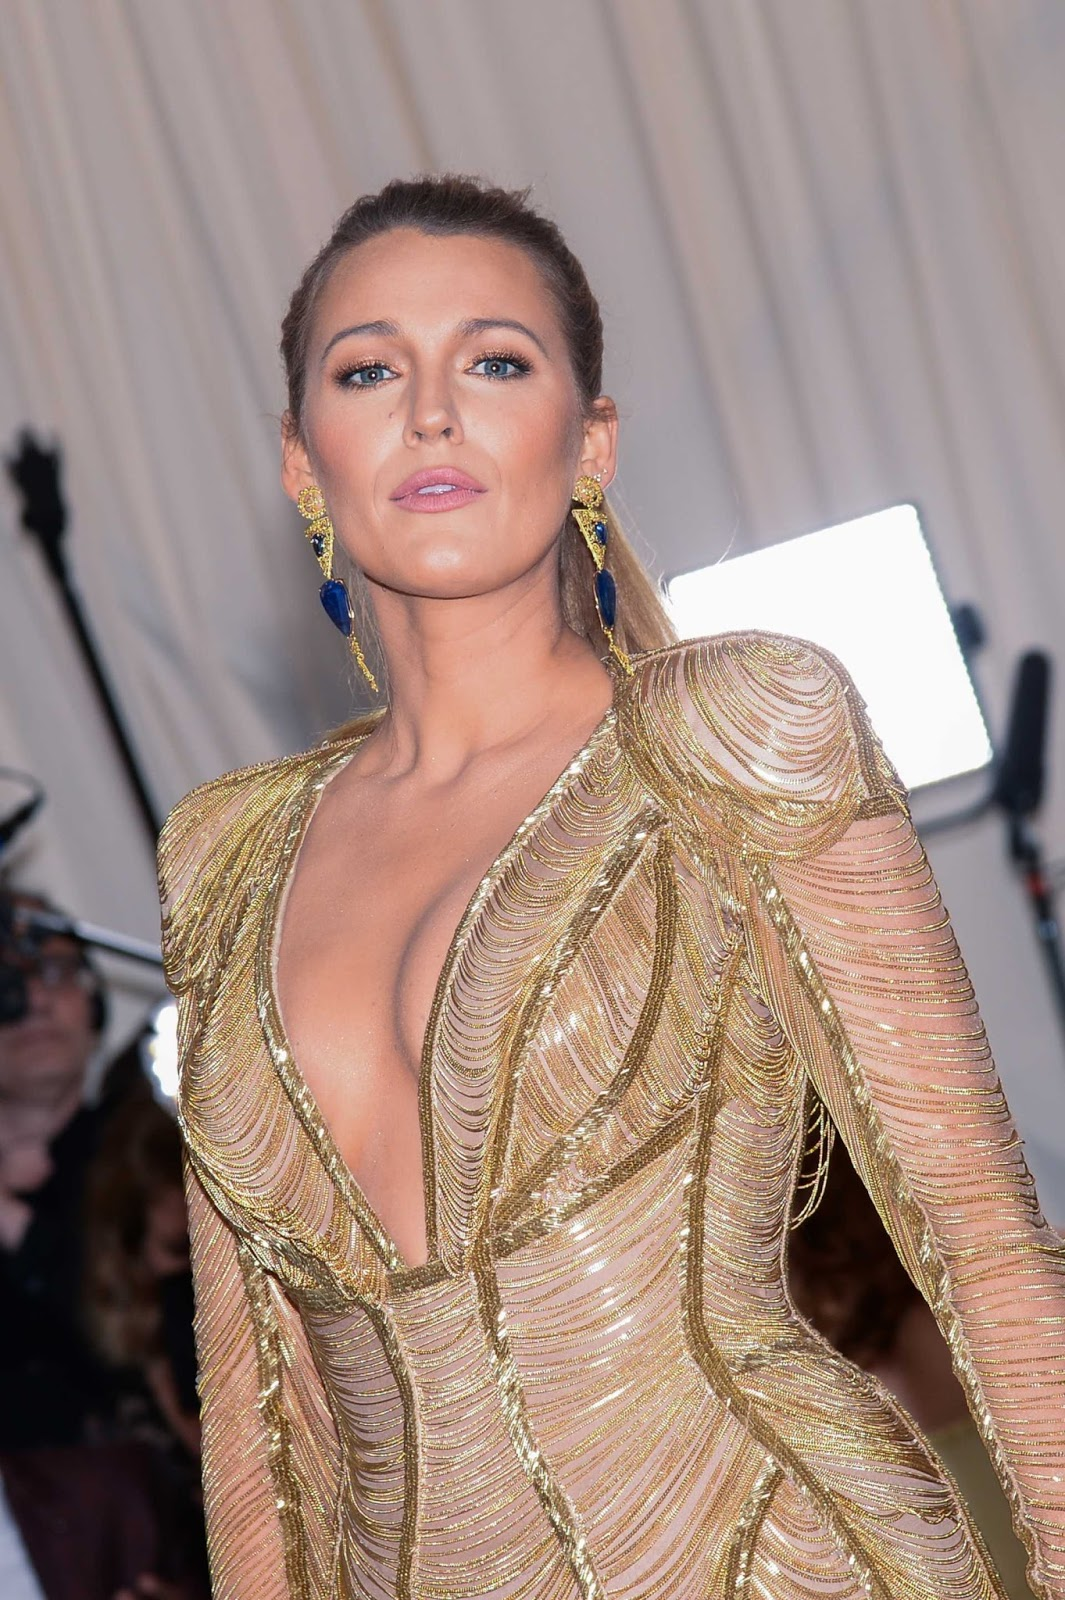 Blake Lively is a tropical goddess at the 2017 Met Gala